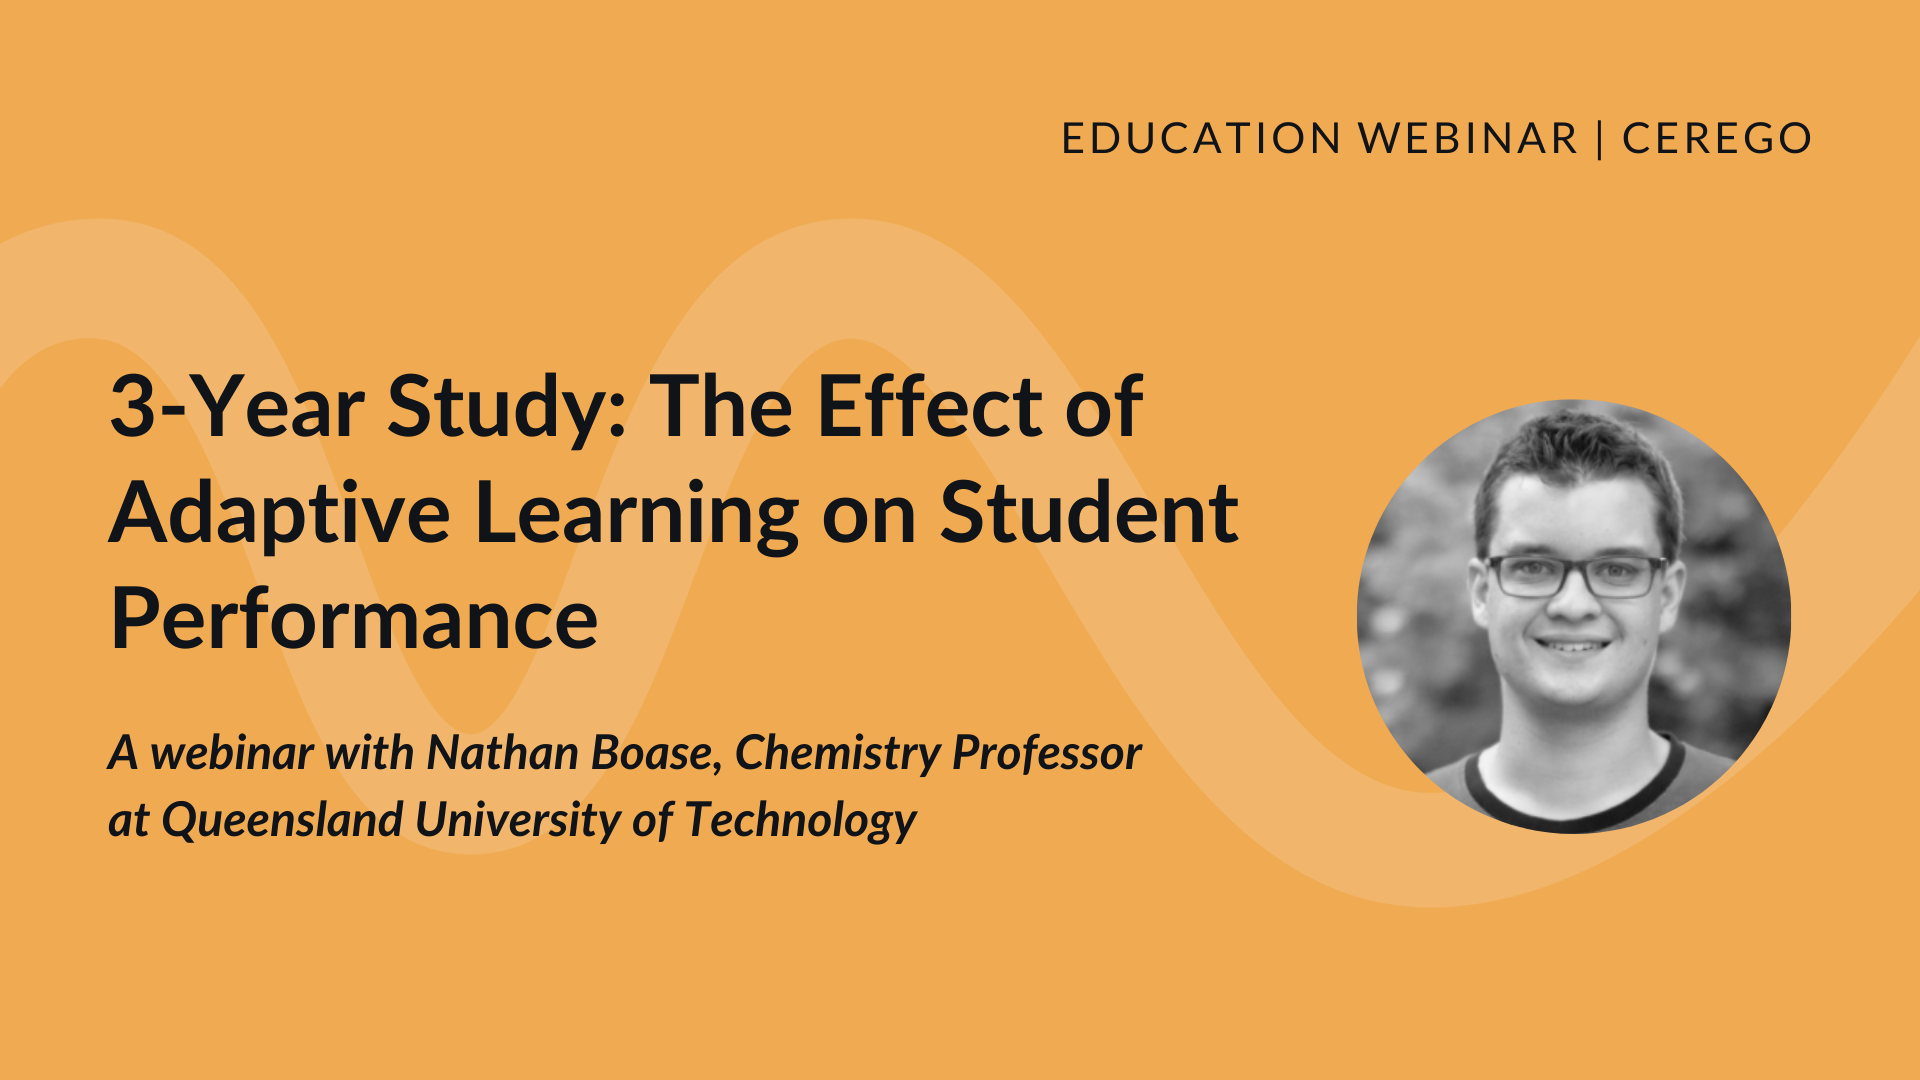 3-Year Study: The Effect of Adaptive Learning on Student Performance | Cerego Webinar